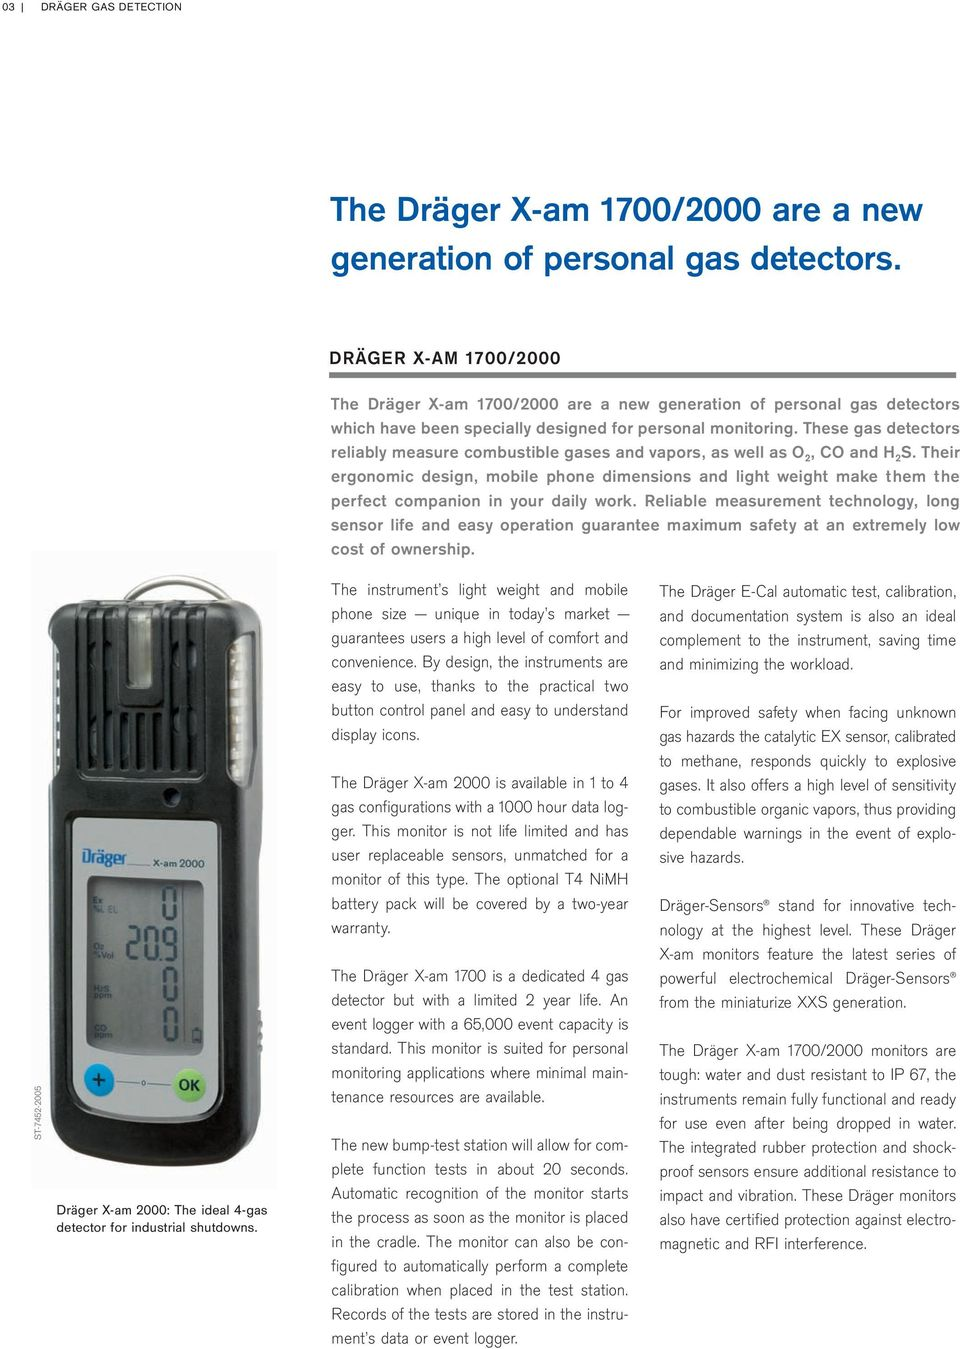 These gas detectors reliably measure combustible gases and vapors, as well as O 2, CO and H 2 S.